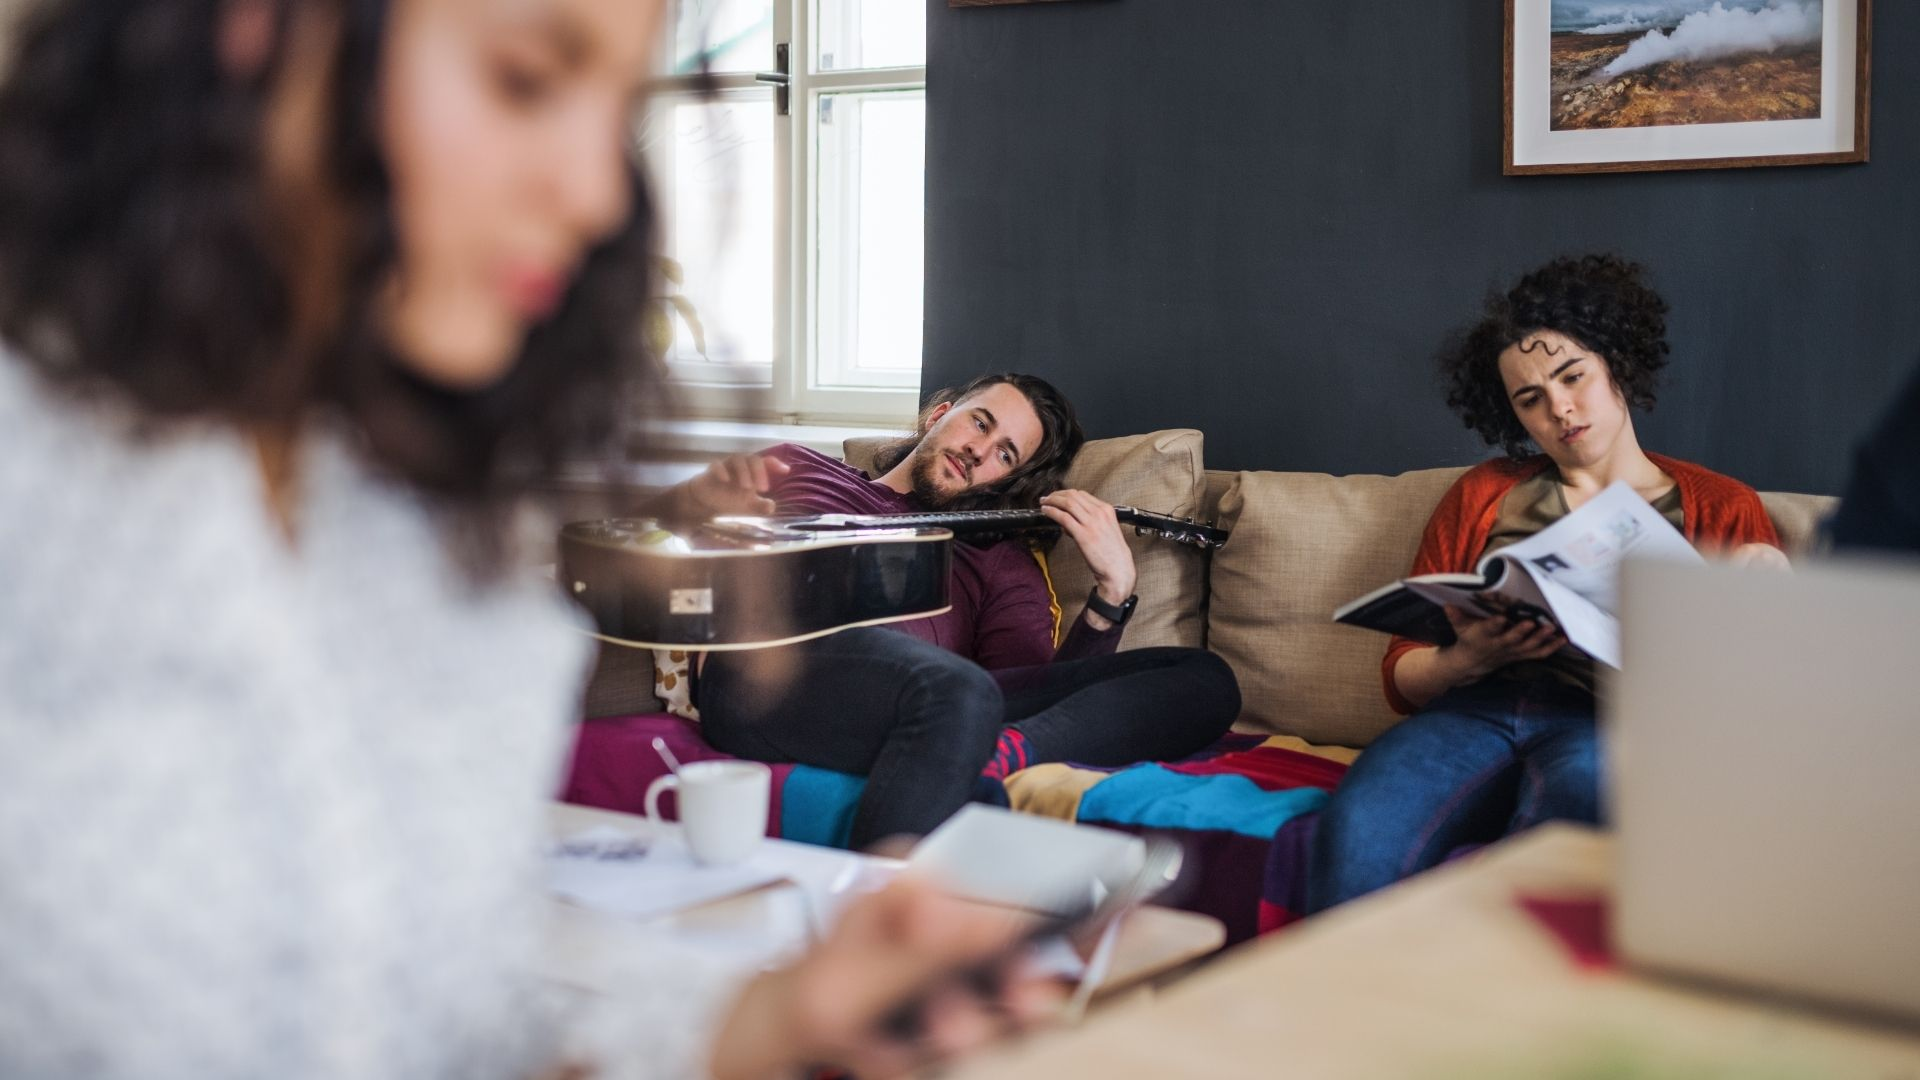 Living in Student Accommodation: 6 Tips to Make it Work